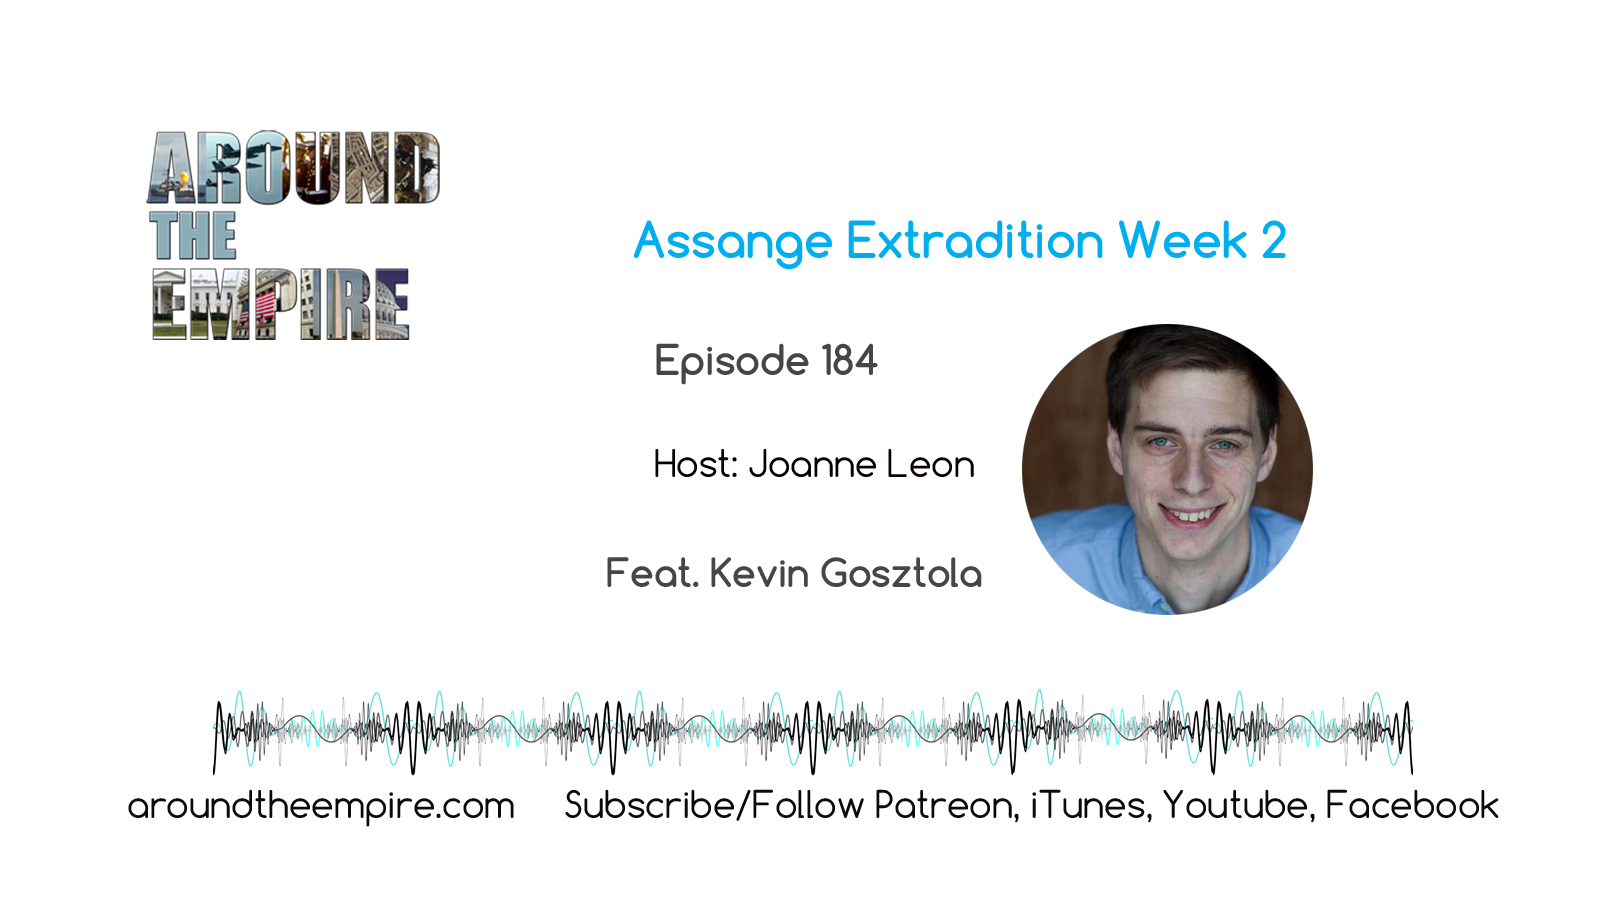 Ep 184 Assange Extradition Week 2 feat Kevin Gosztola